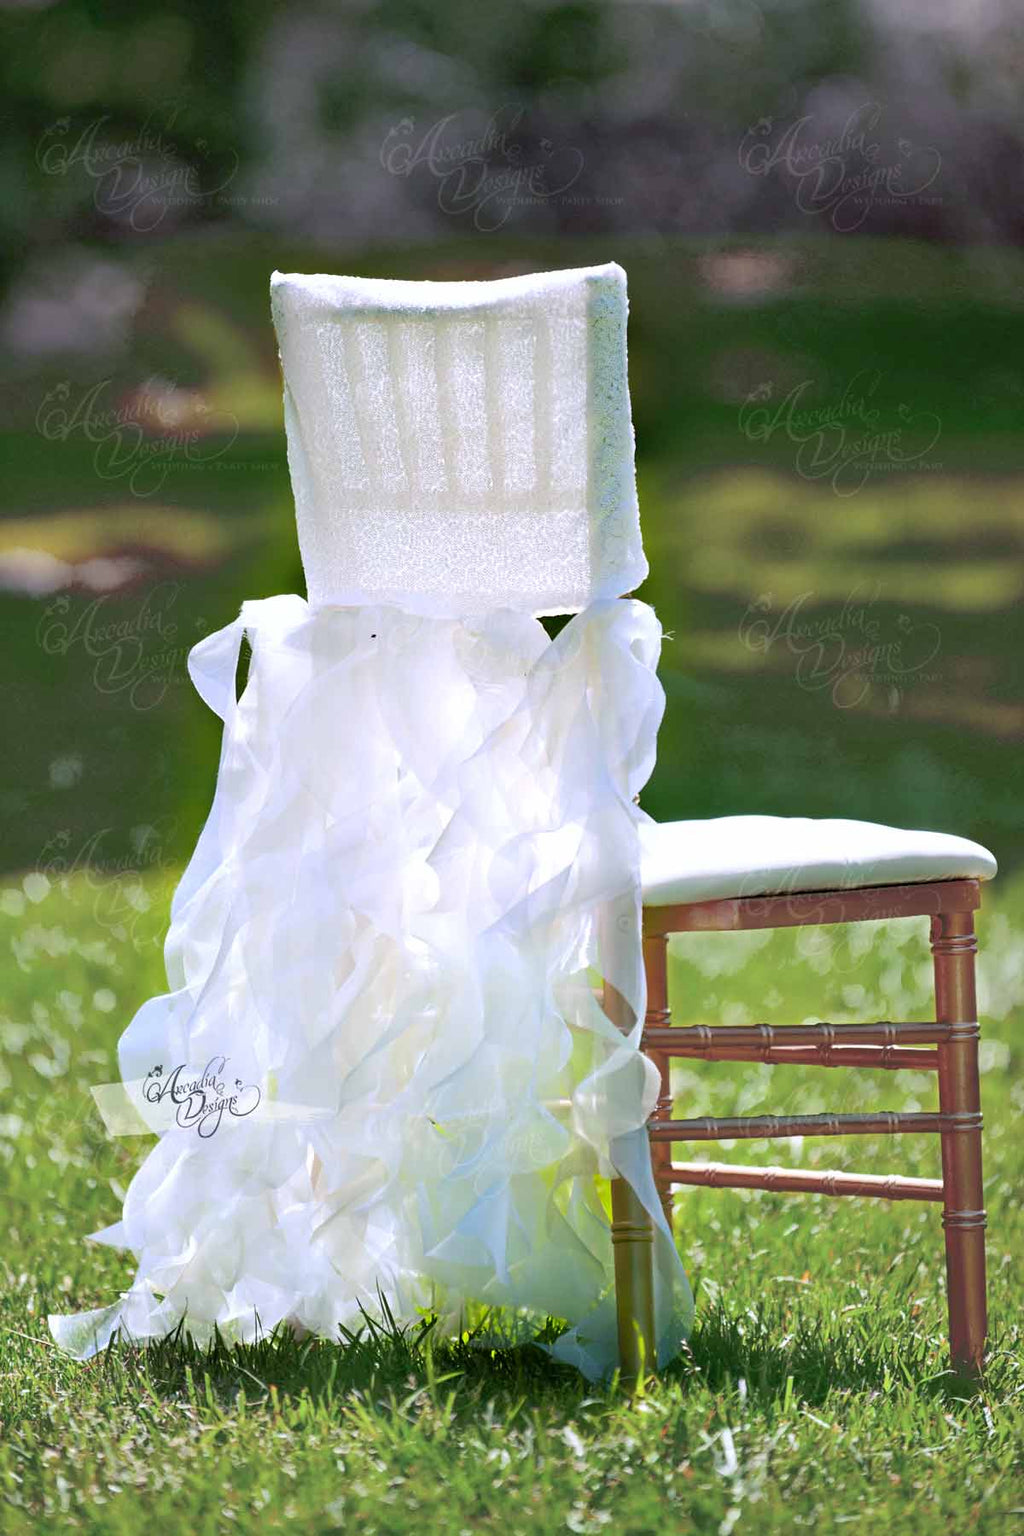 Arcadia Designs Shimmer White Curly Willow Sequin Chair Cover